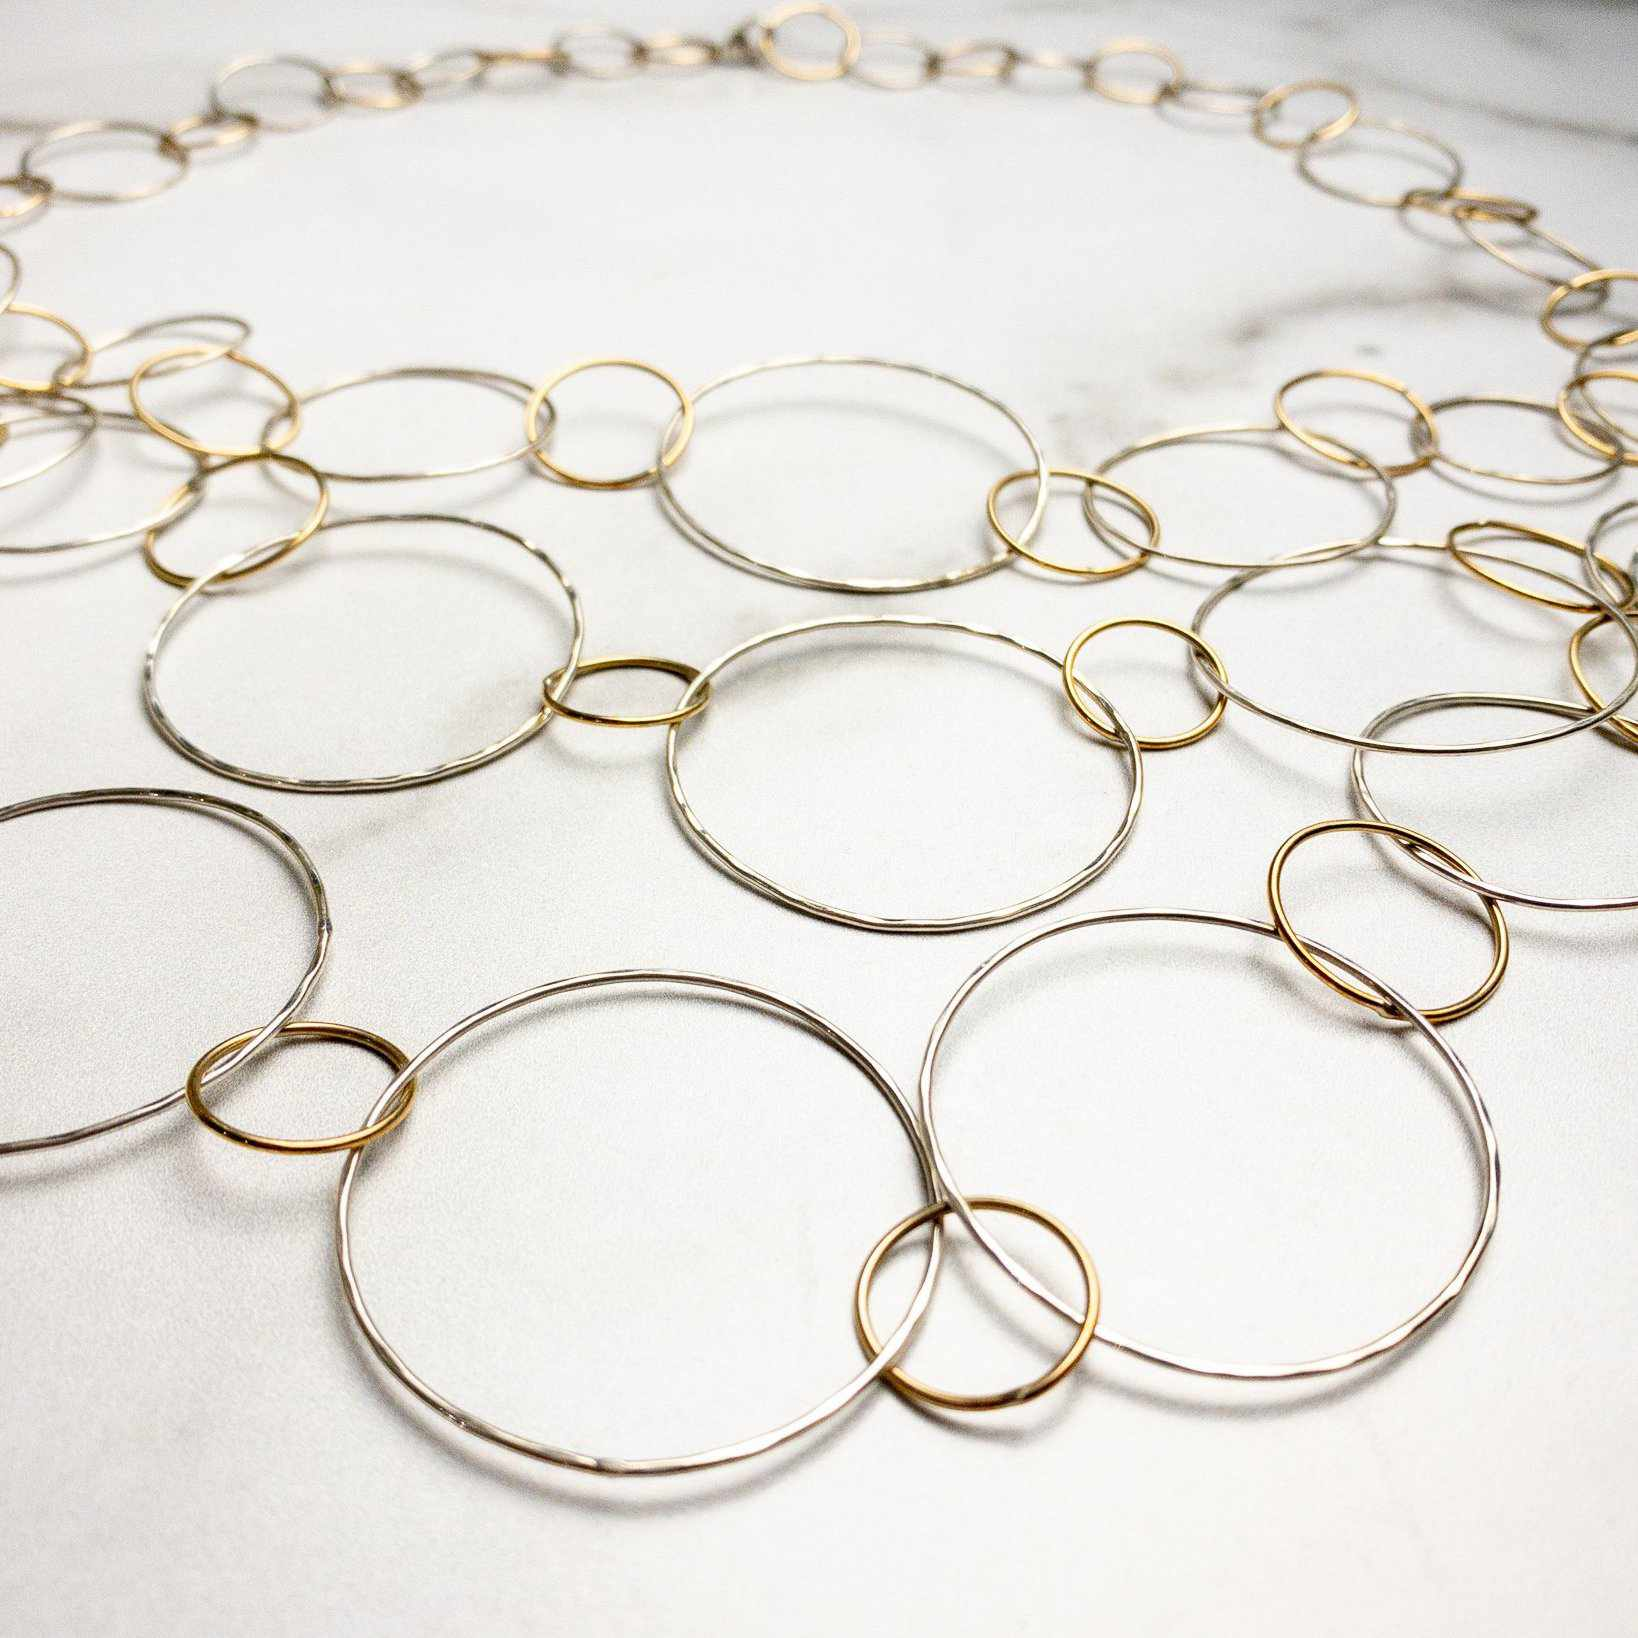 Cascading Circles Necklace - Edgecomb Potters